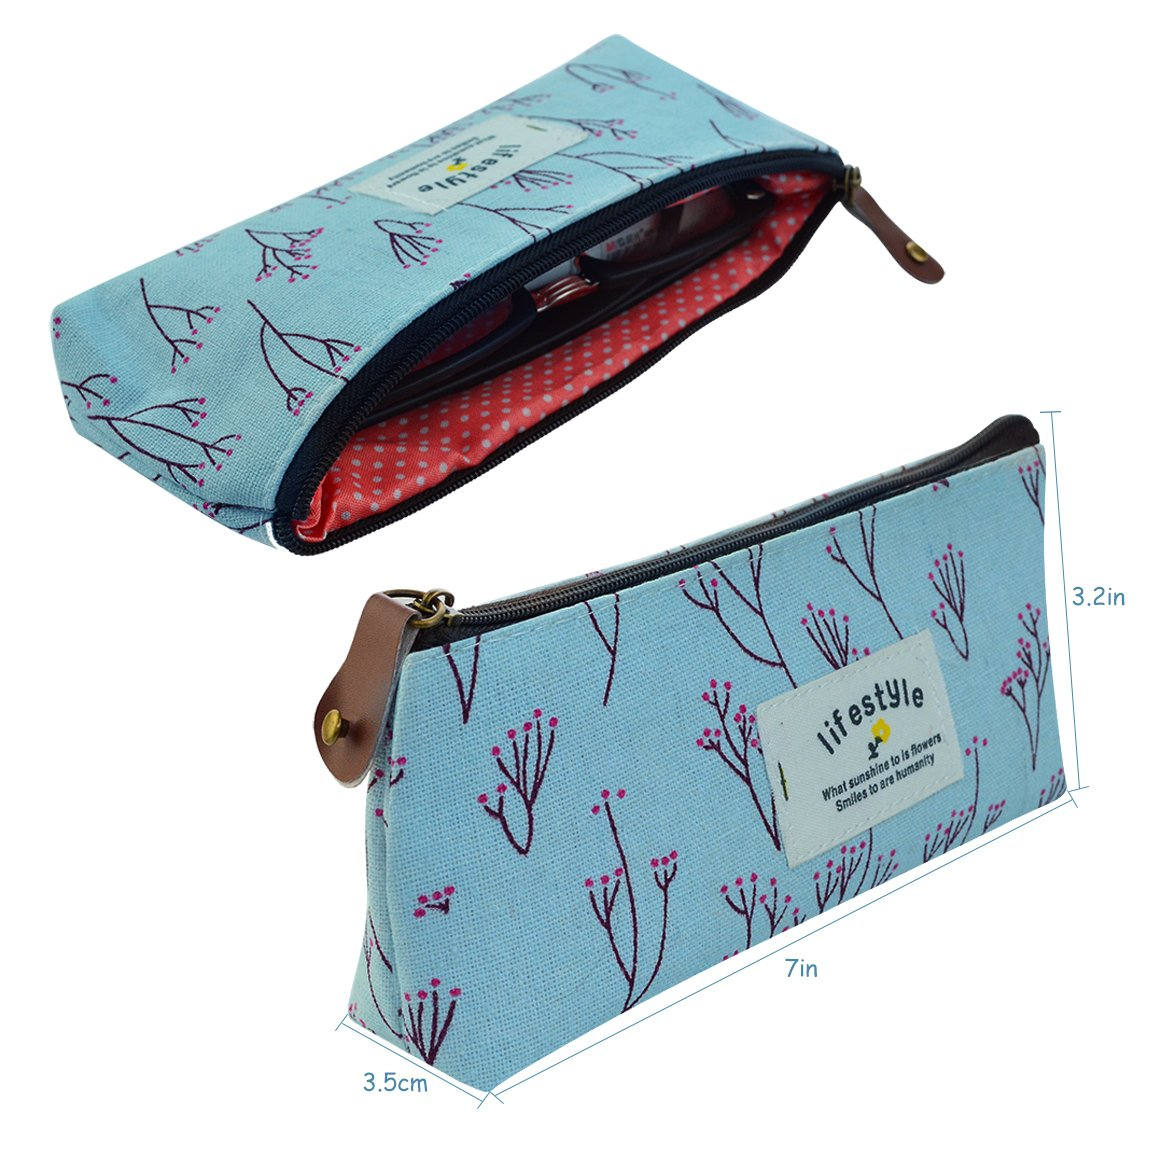 Miayon Countryside Flower Floral Pencil Pen Case Cosmetic Makeup Bag Set of 3 by Miayon : Cosmetic Bags : Beauty